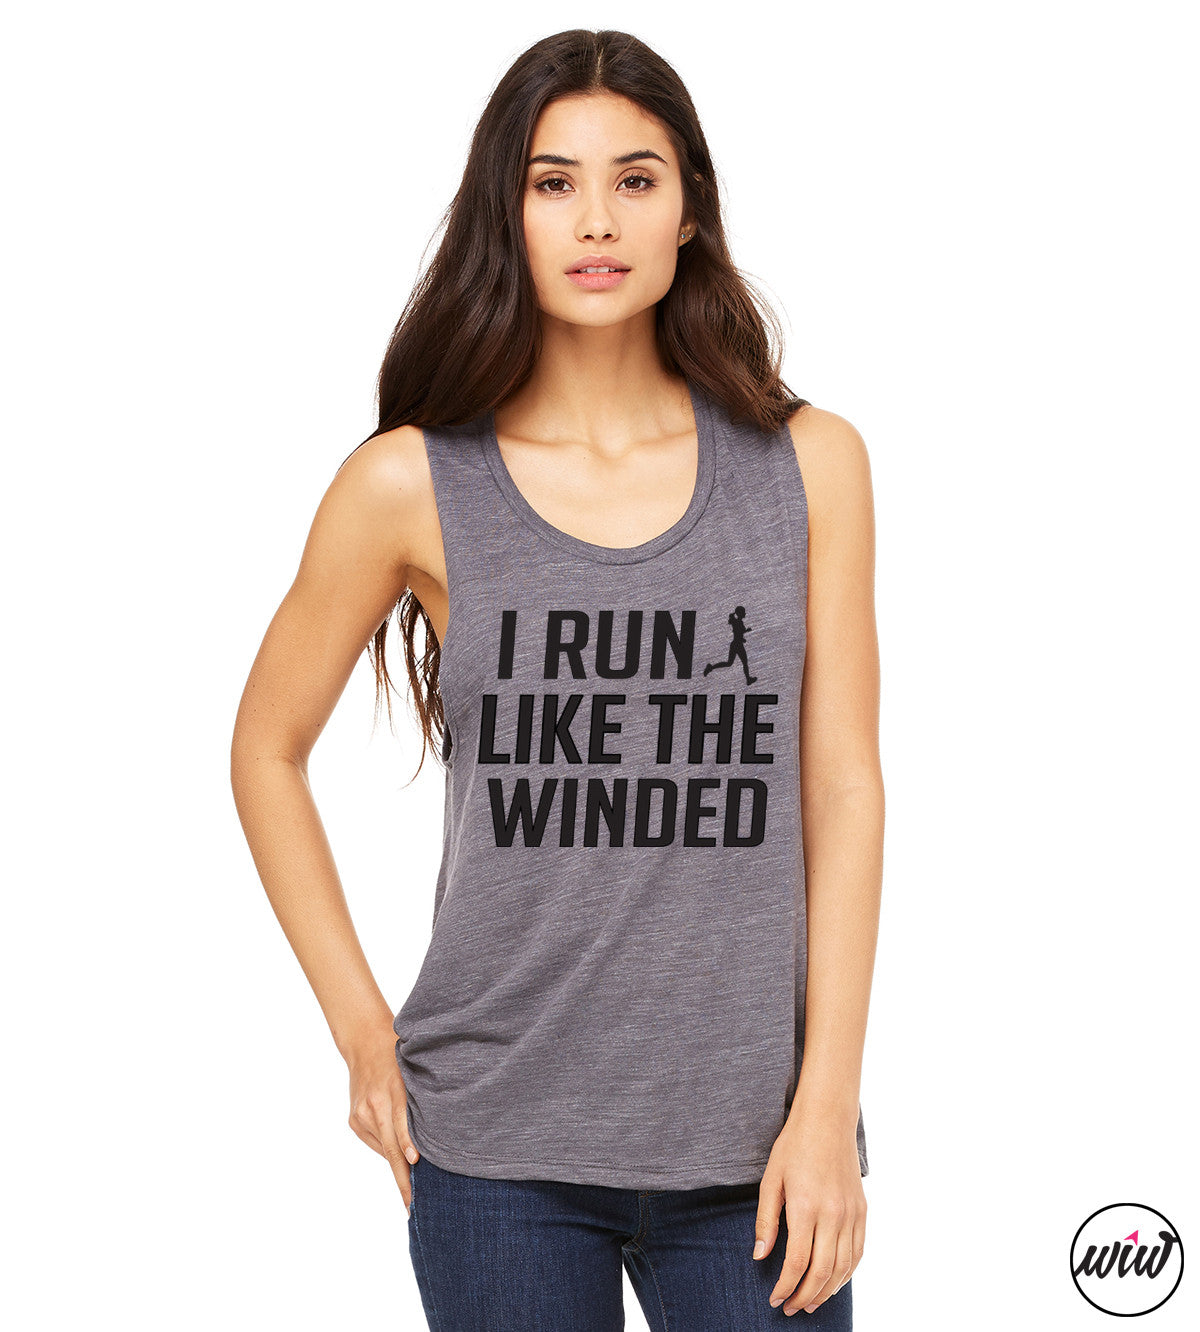 I Run Like the Winded Women's Muscle Tank Top. Workout Tank. Fitness Tank. Running Tank. Funny Running Shirt. Running Late. Marathoner. Run All The Miles